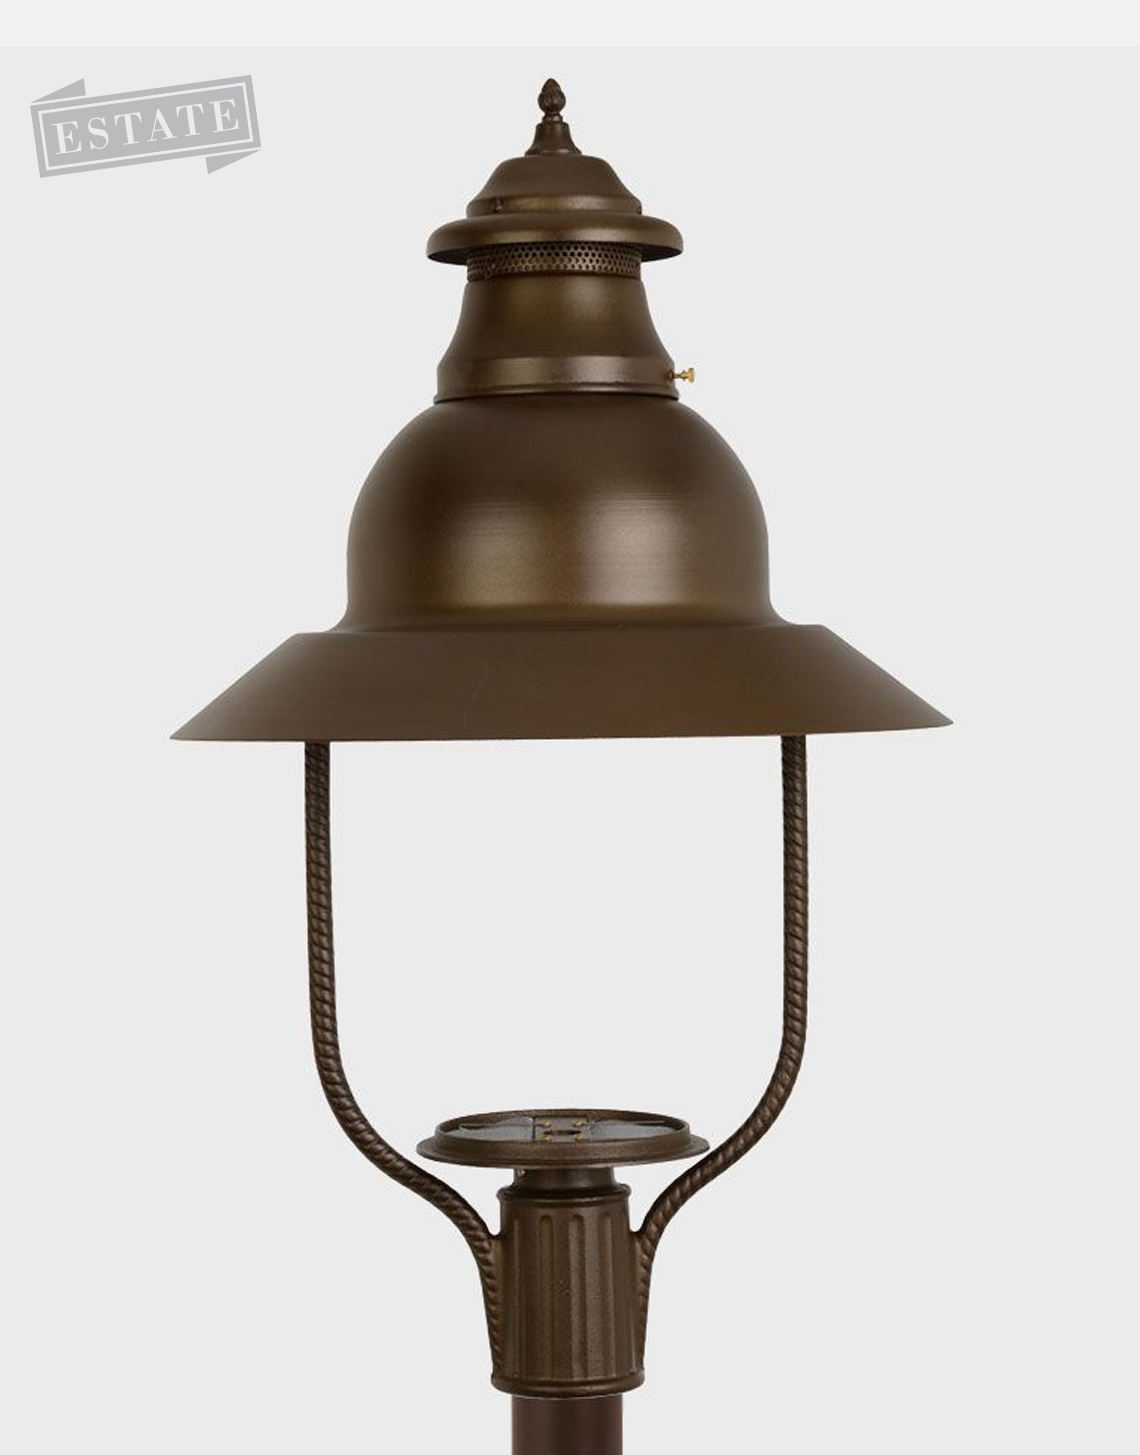 Apollo 4300 Gaslite Outdoor Gas And Electric Yard Lamp